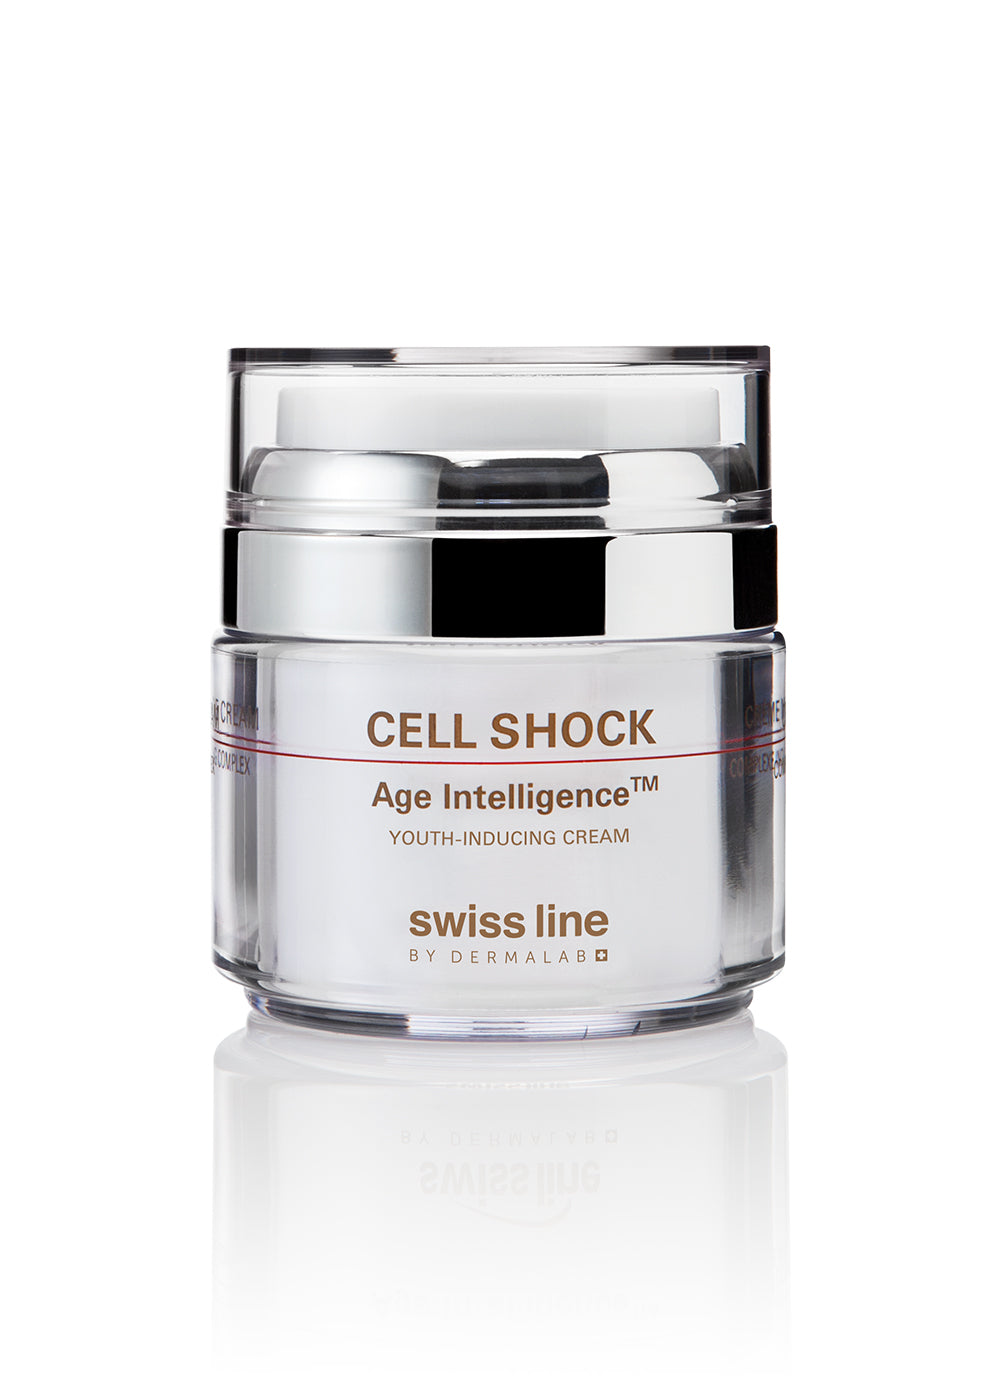 Swiss Line Cell Shock Age Intelligence Youth-Inducing Cream